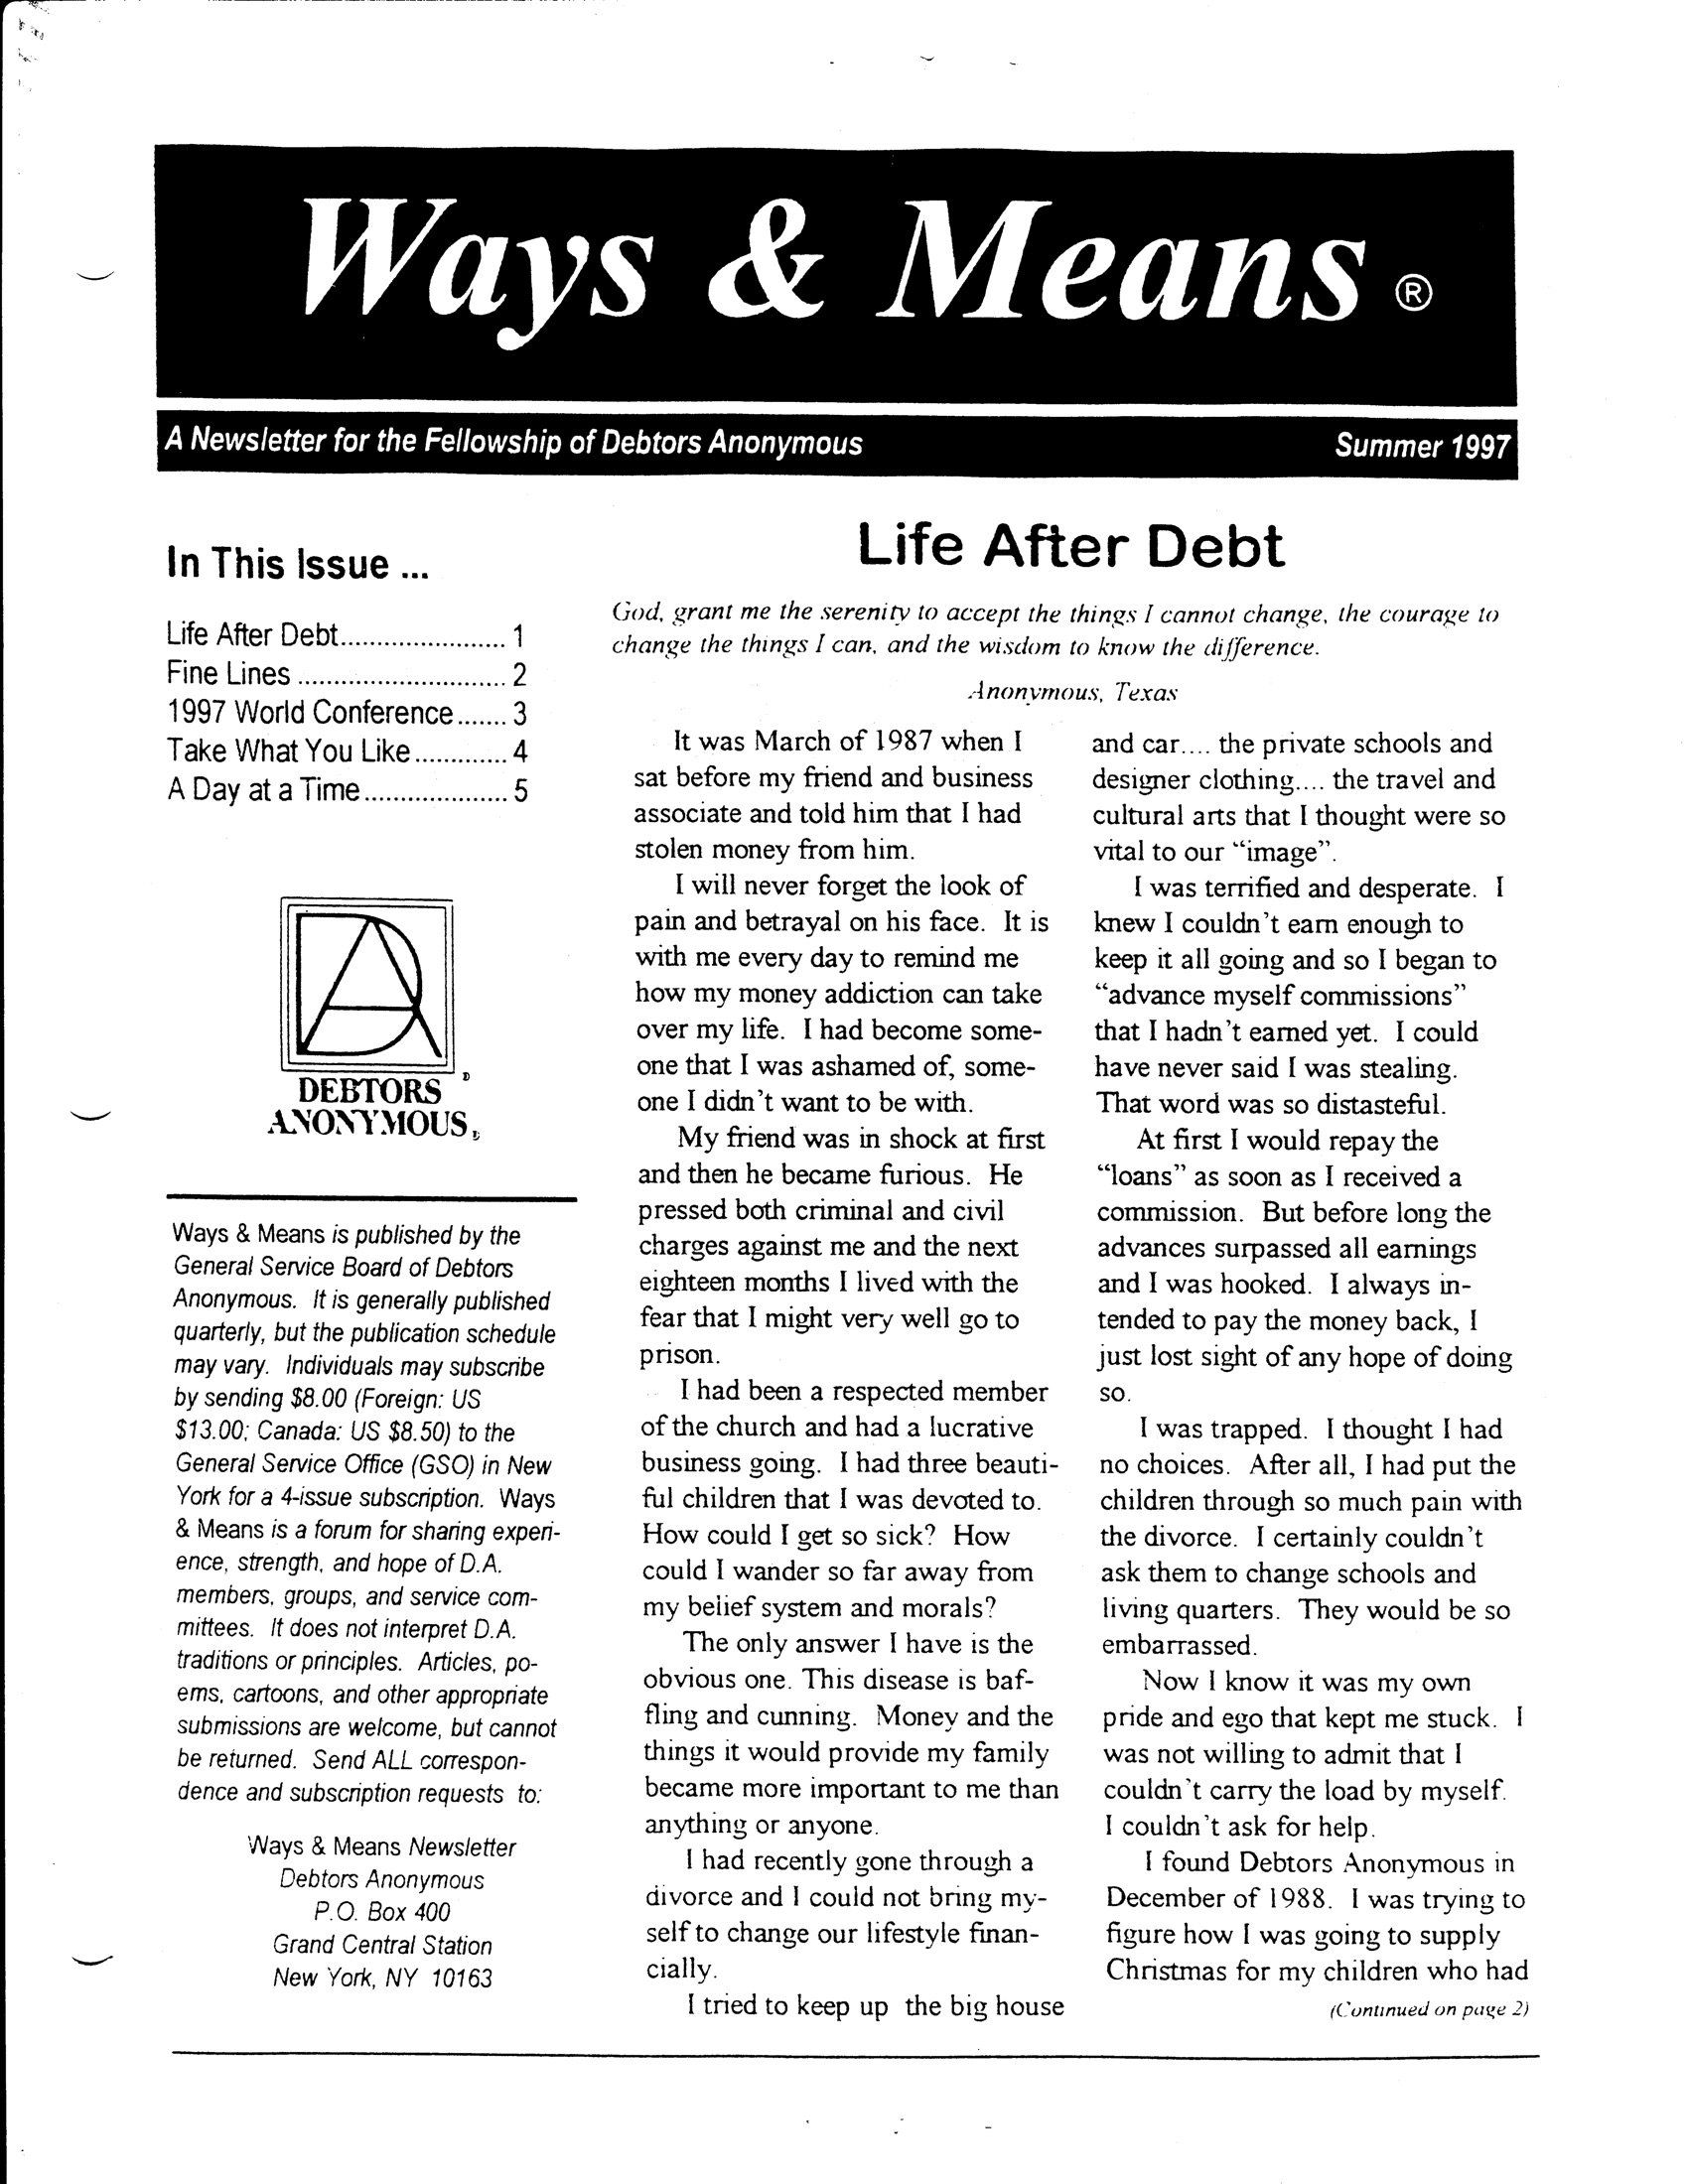 Ways & Means 3rd QTR 1997